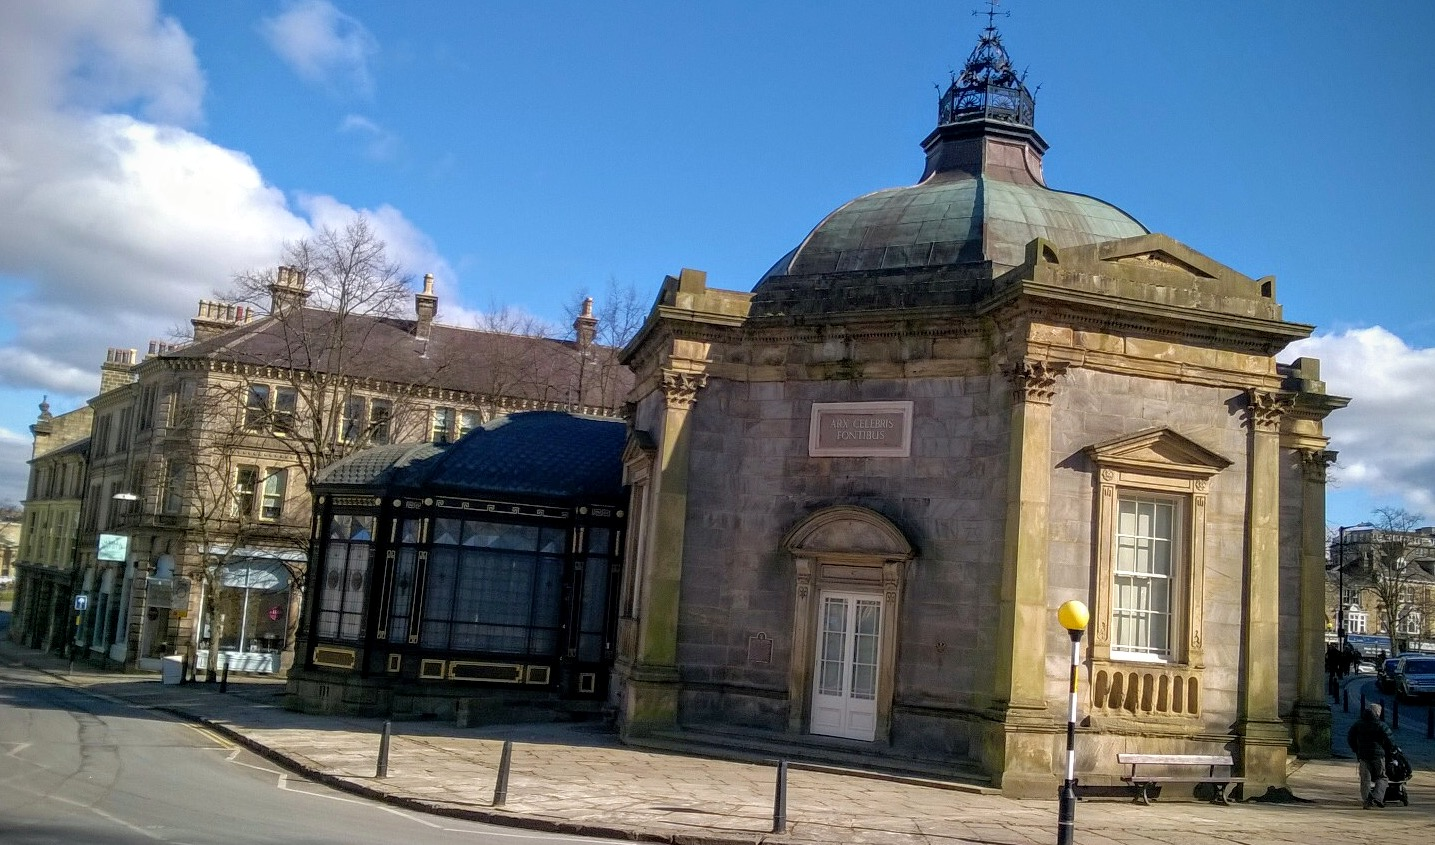 The Pump Room Museum, Harrogate